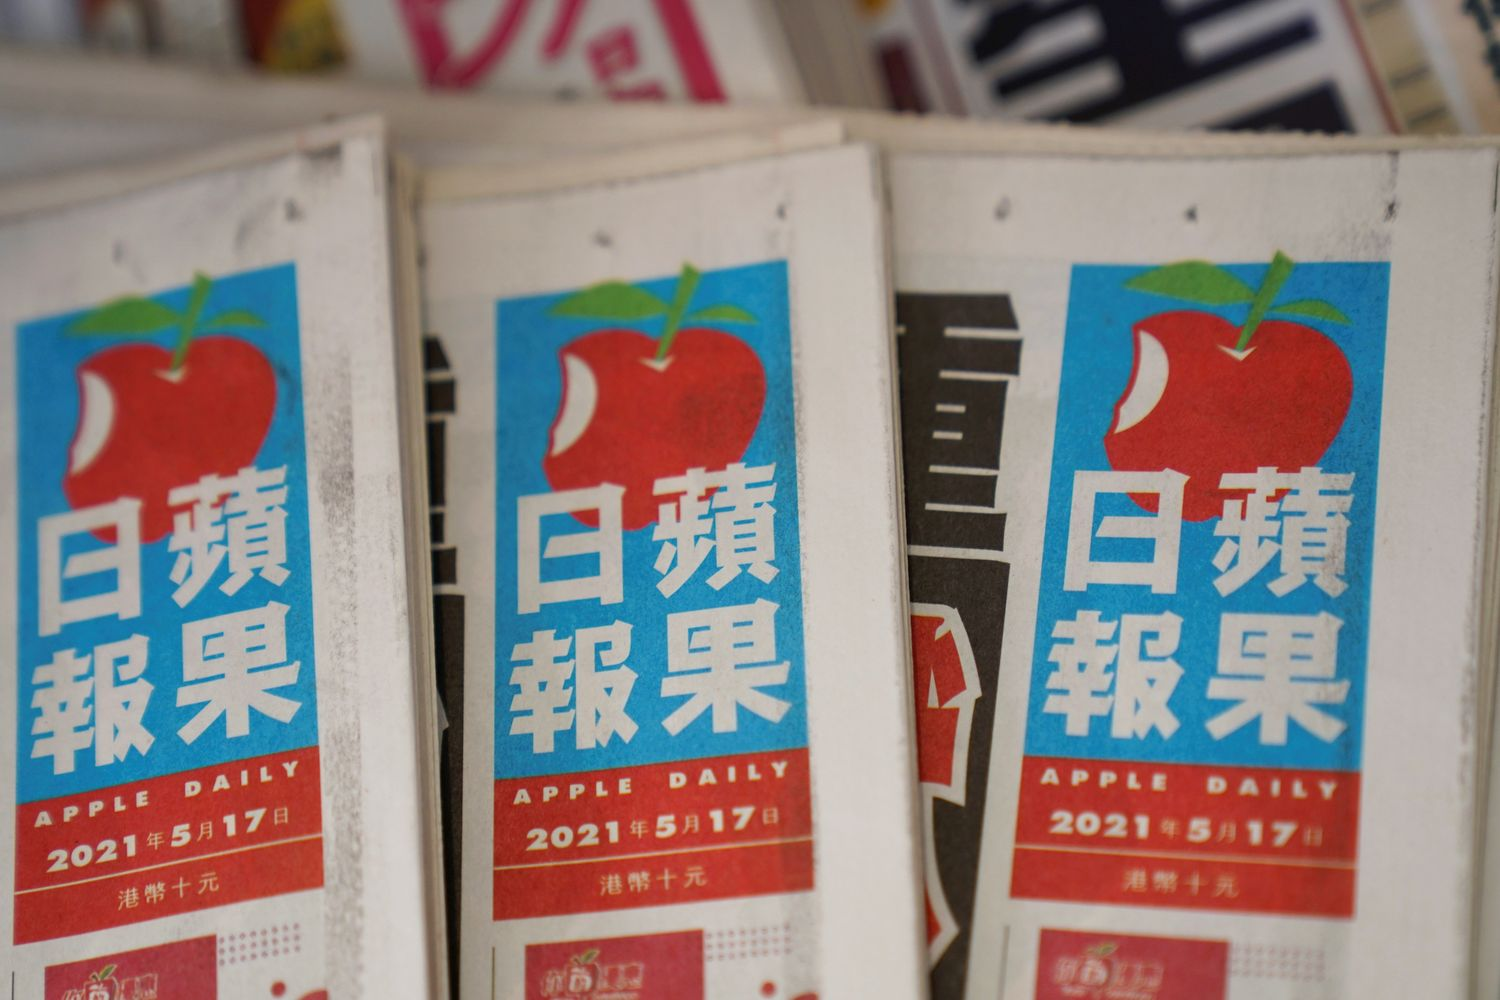 'Apple Daily' may be shut on Wednesday